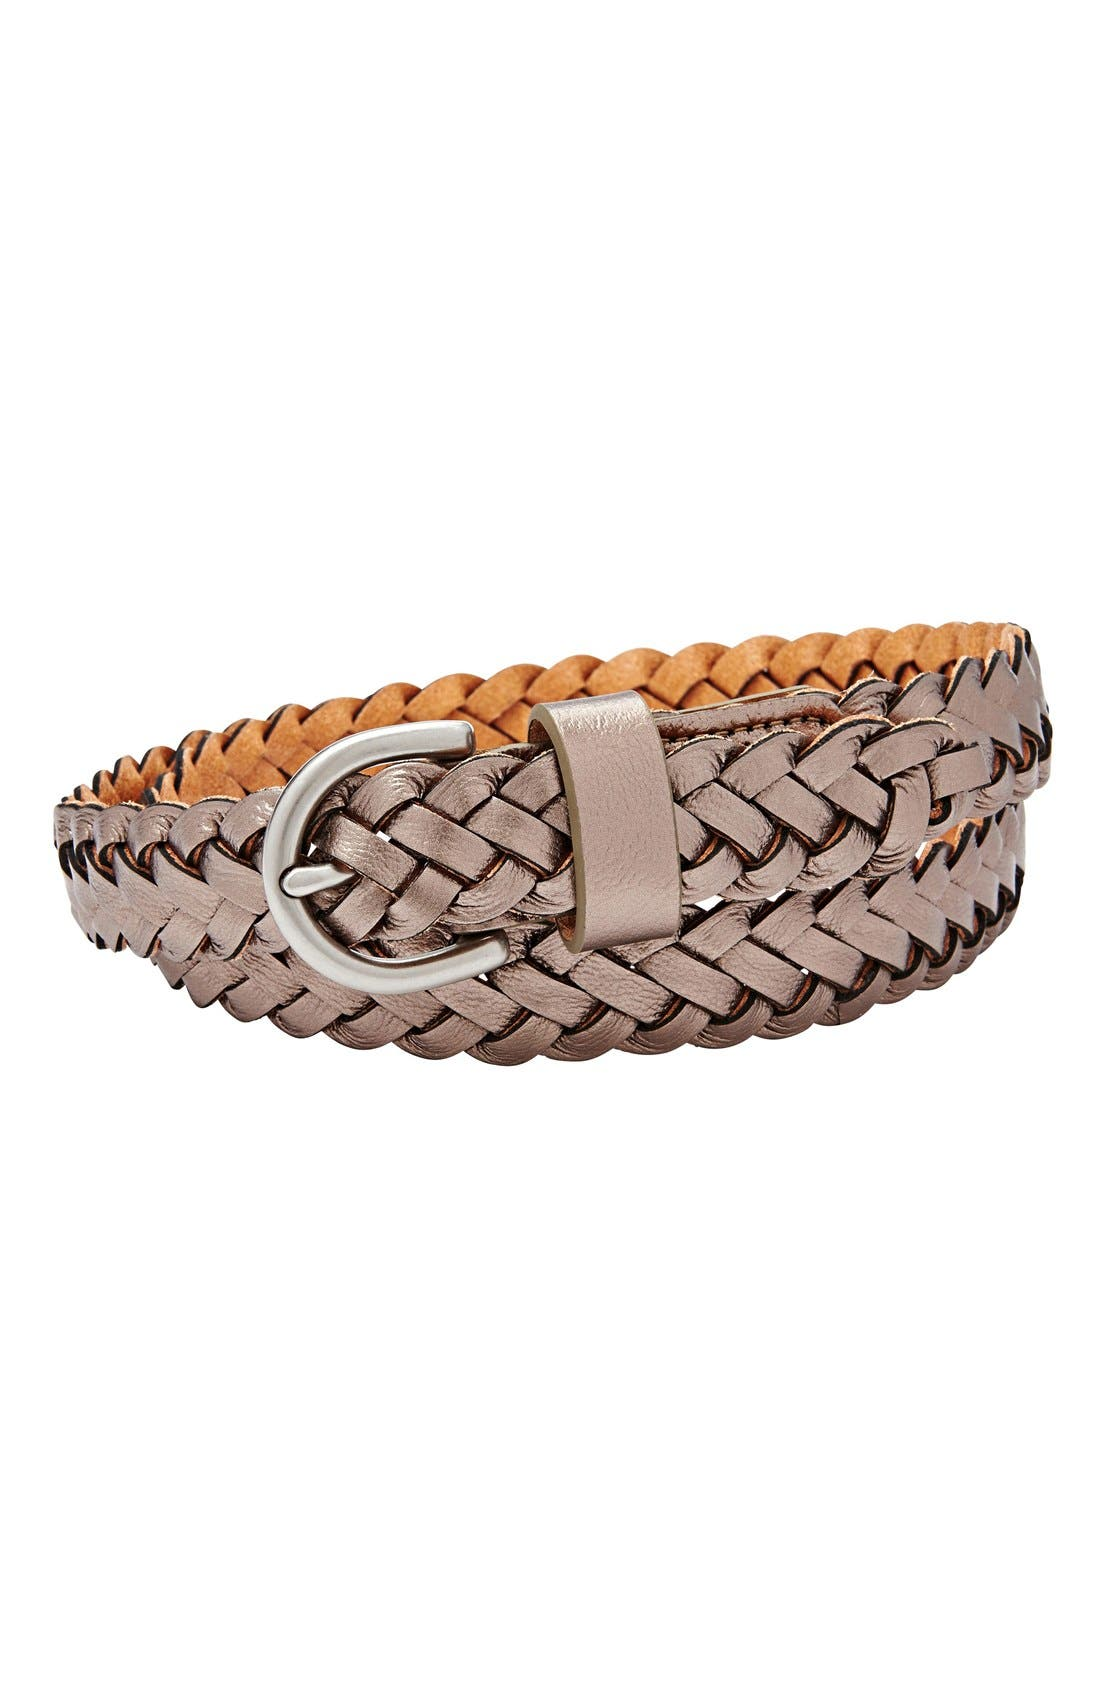 Main Image - Fossil Woven Leather Belt